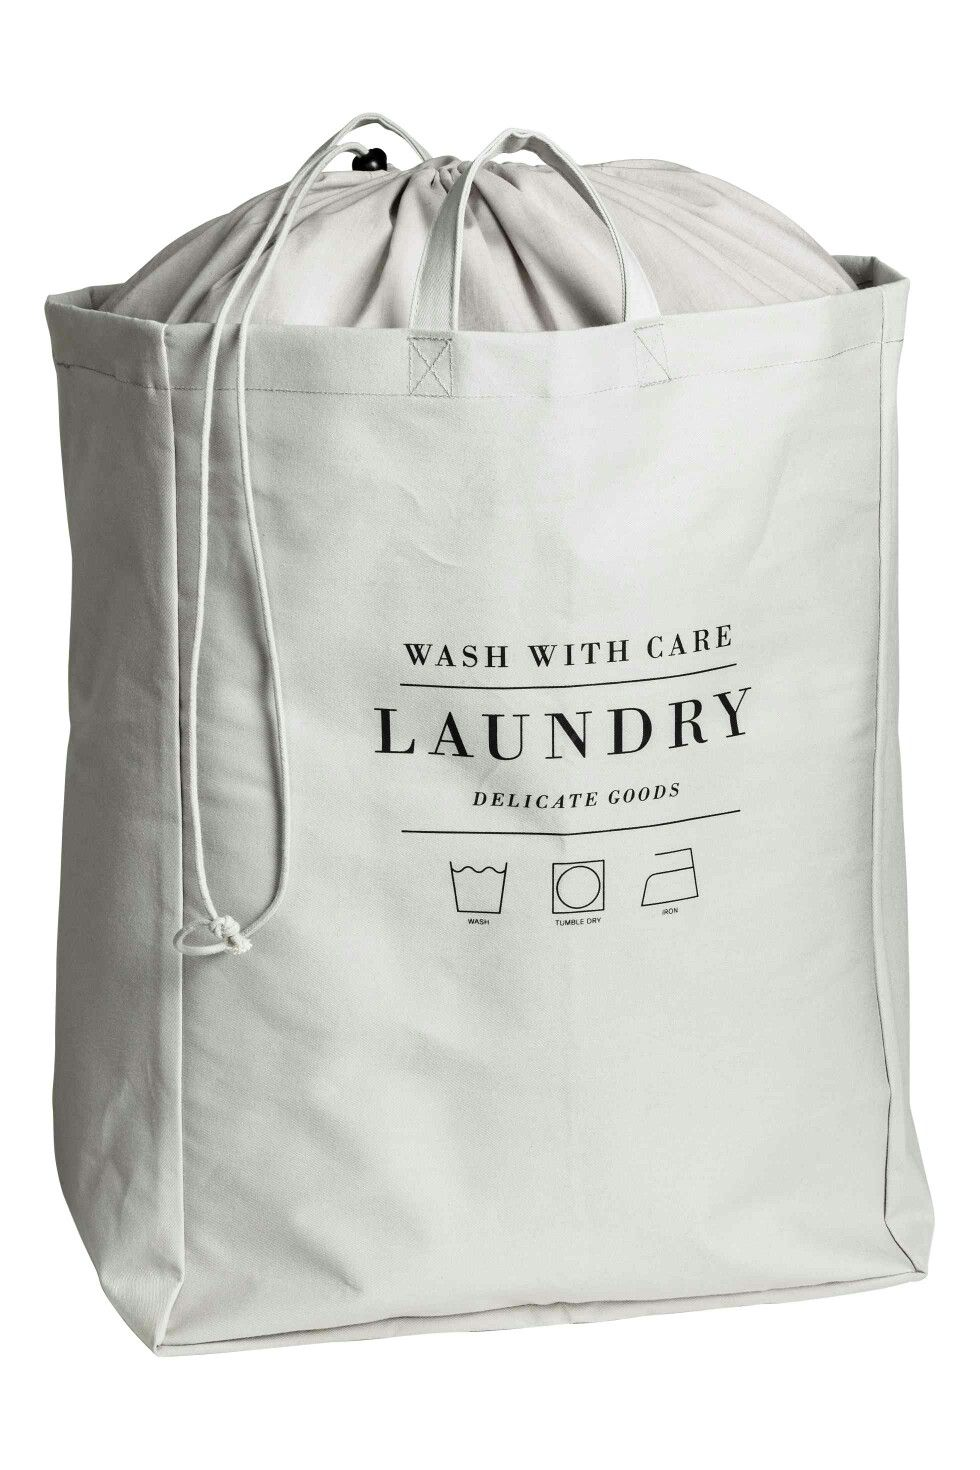 Pin By Future Pixelz On Bags With Images Laundry Bag Laundry